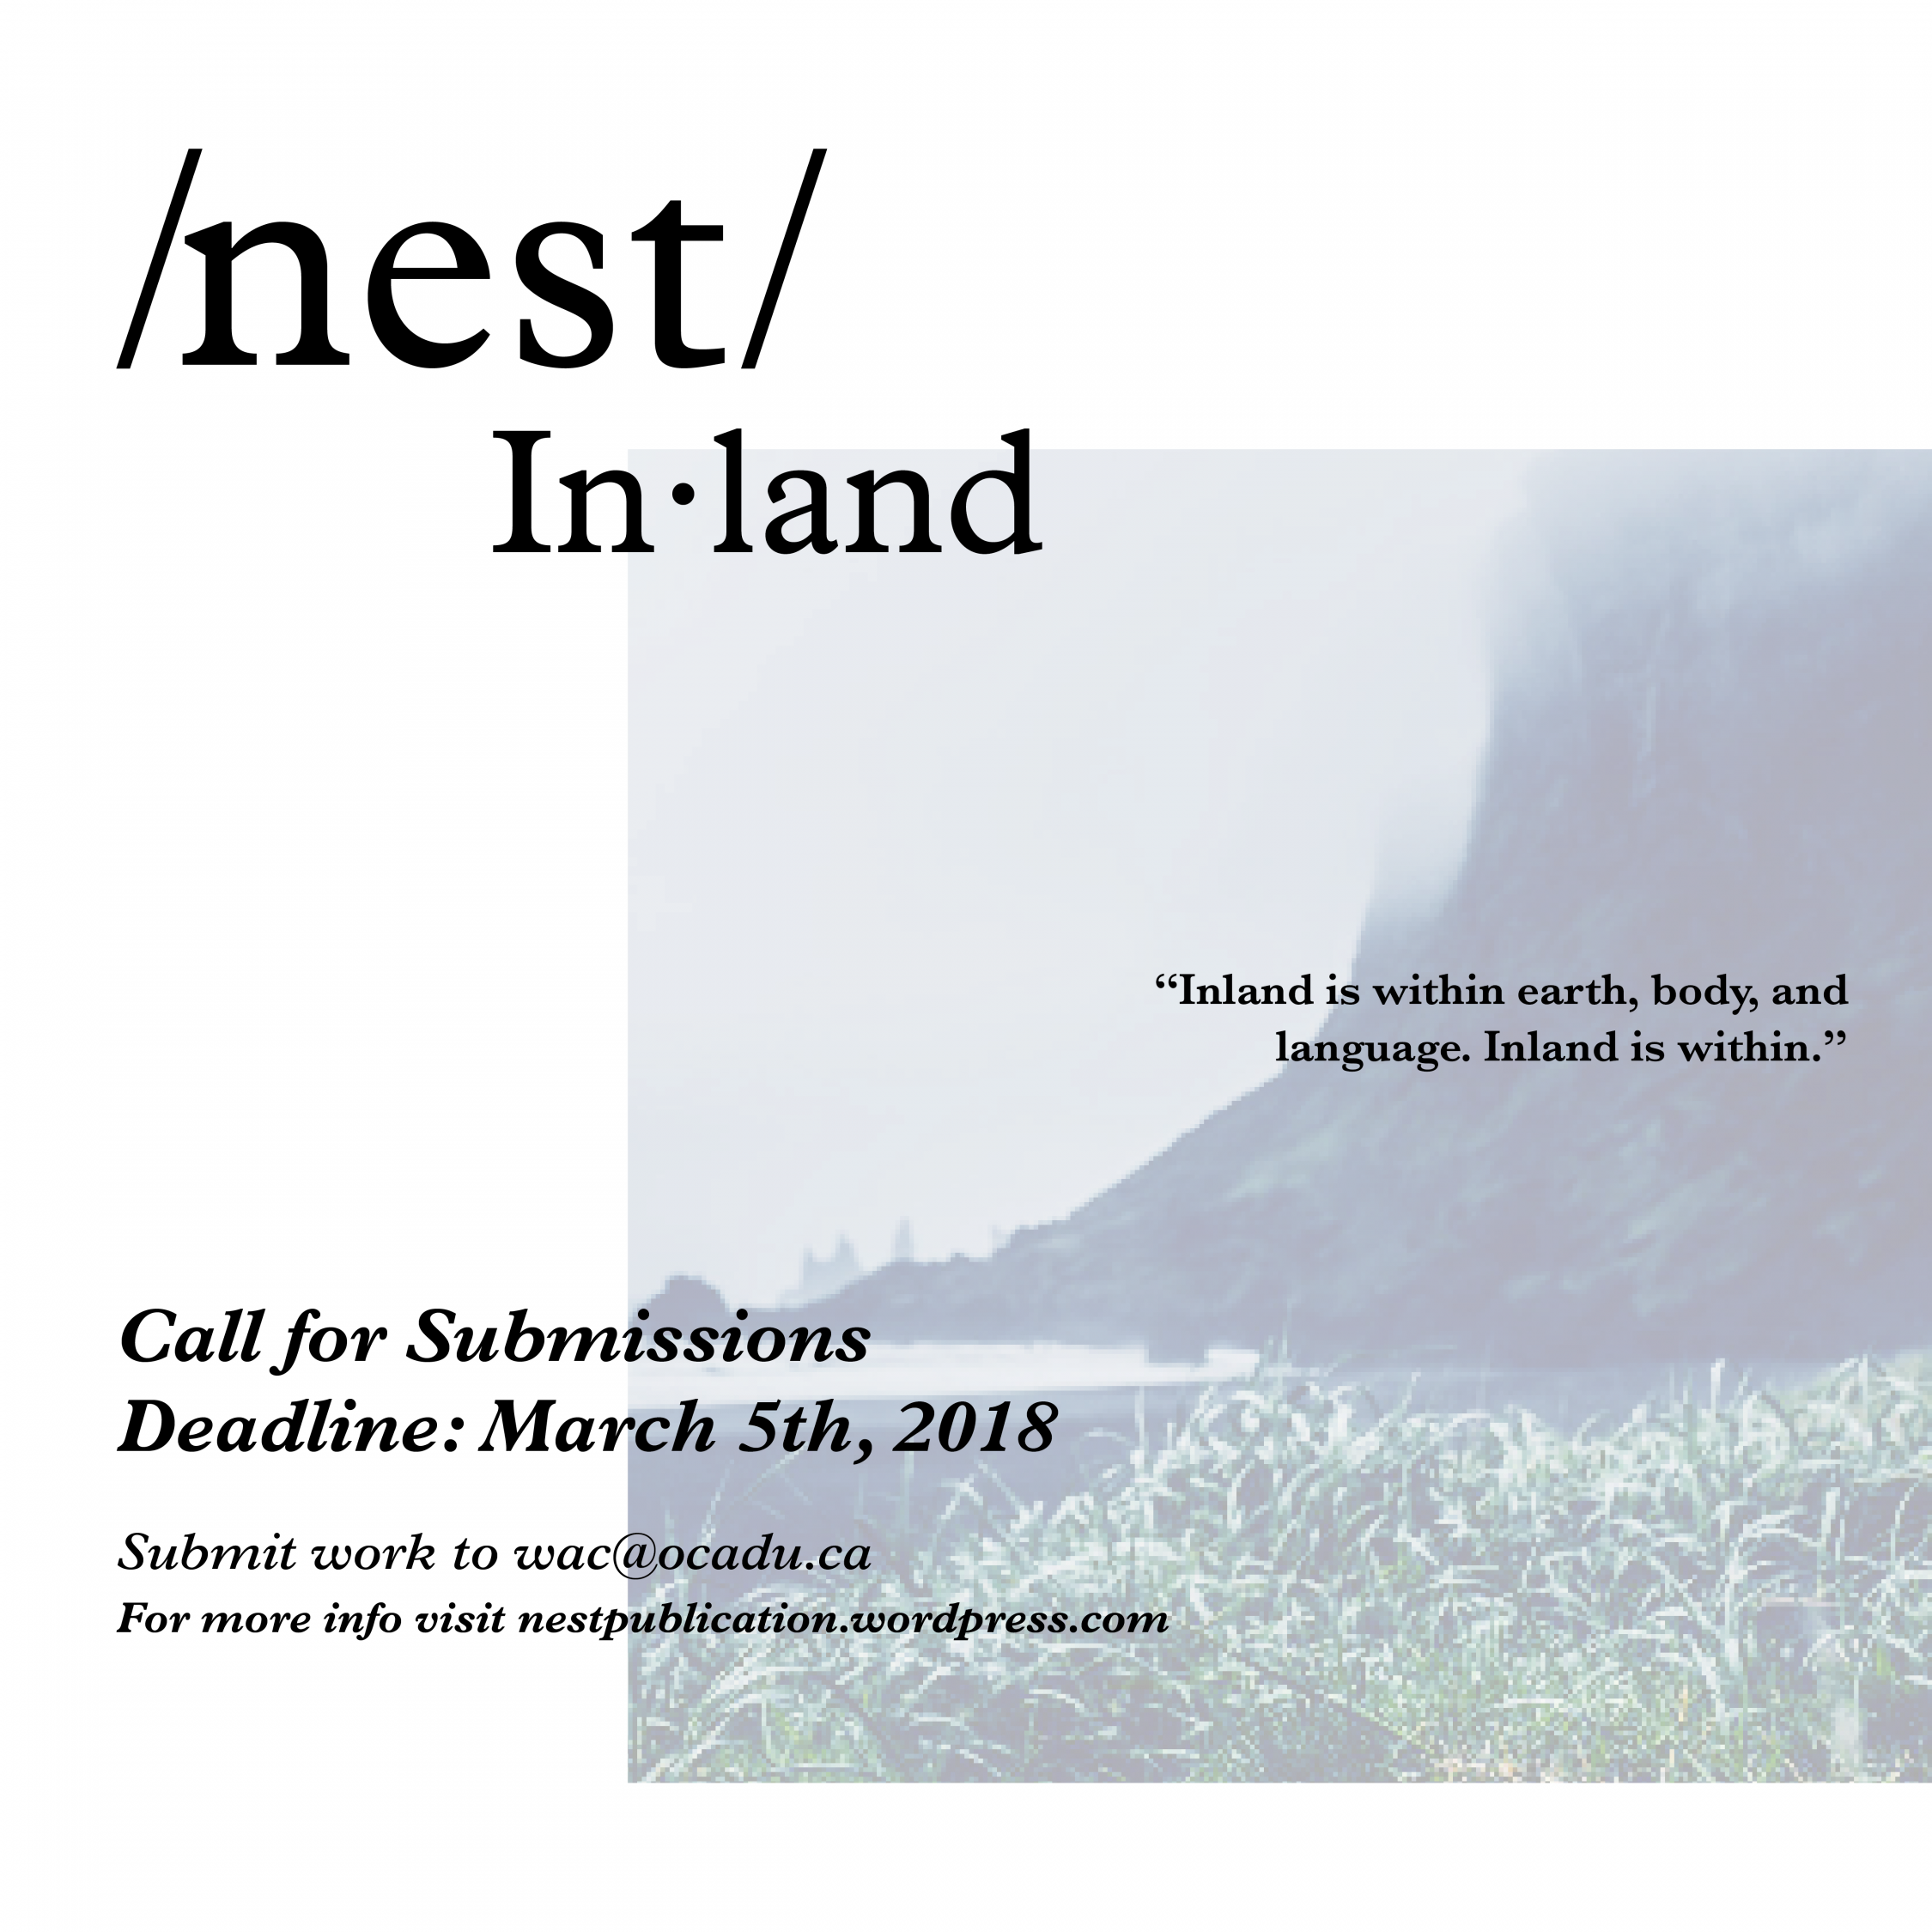 Nest Call for Submissions Deadline March 5, 2018